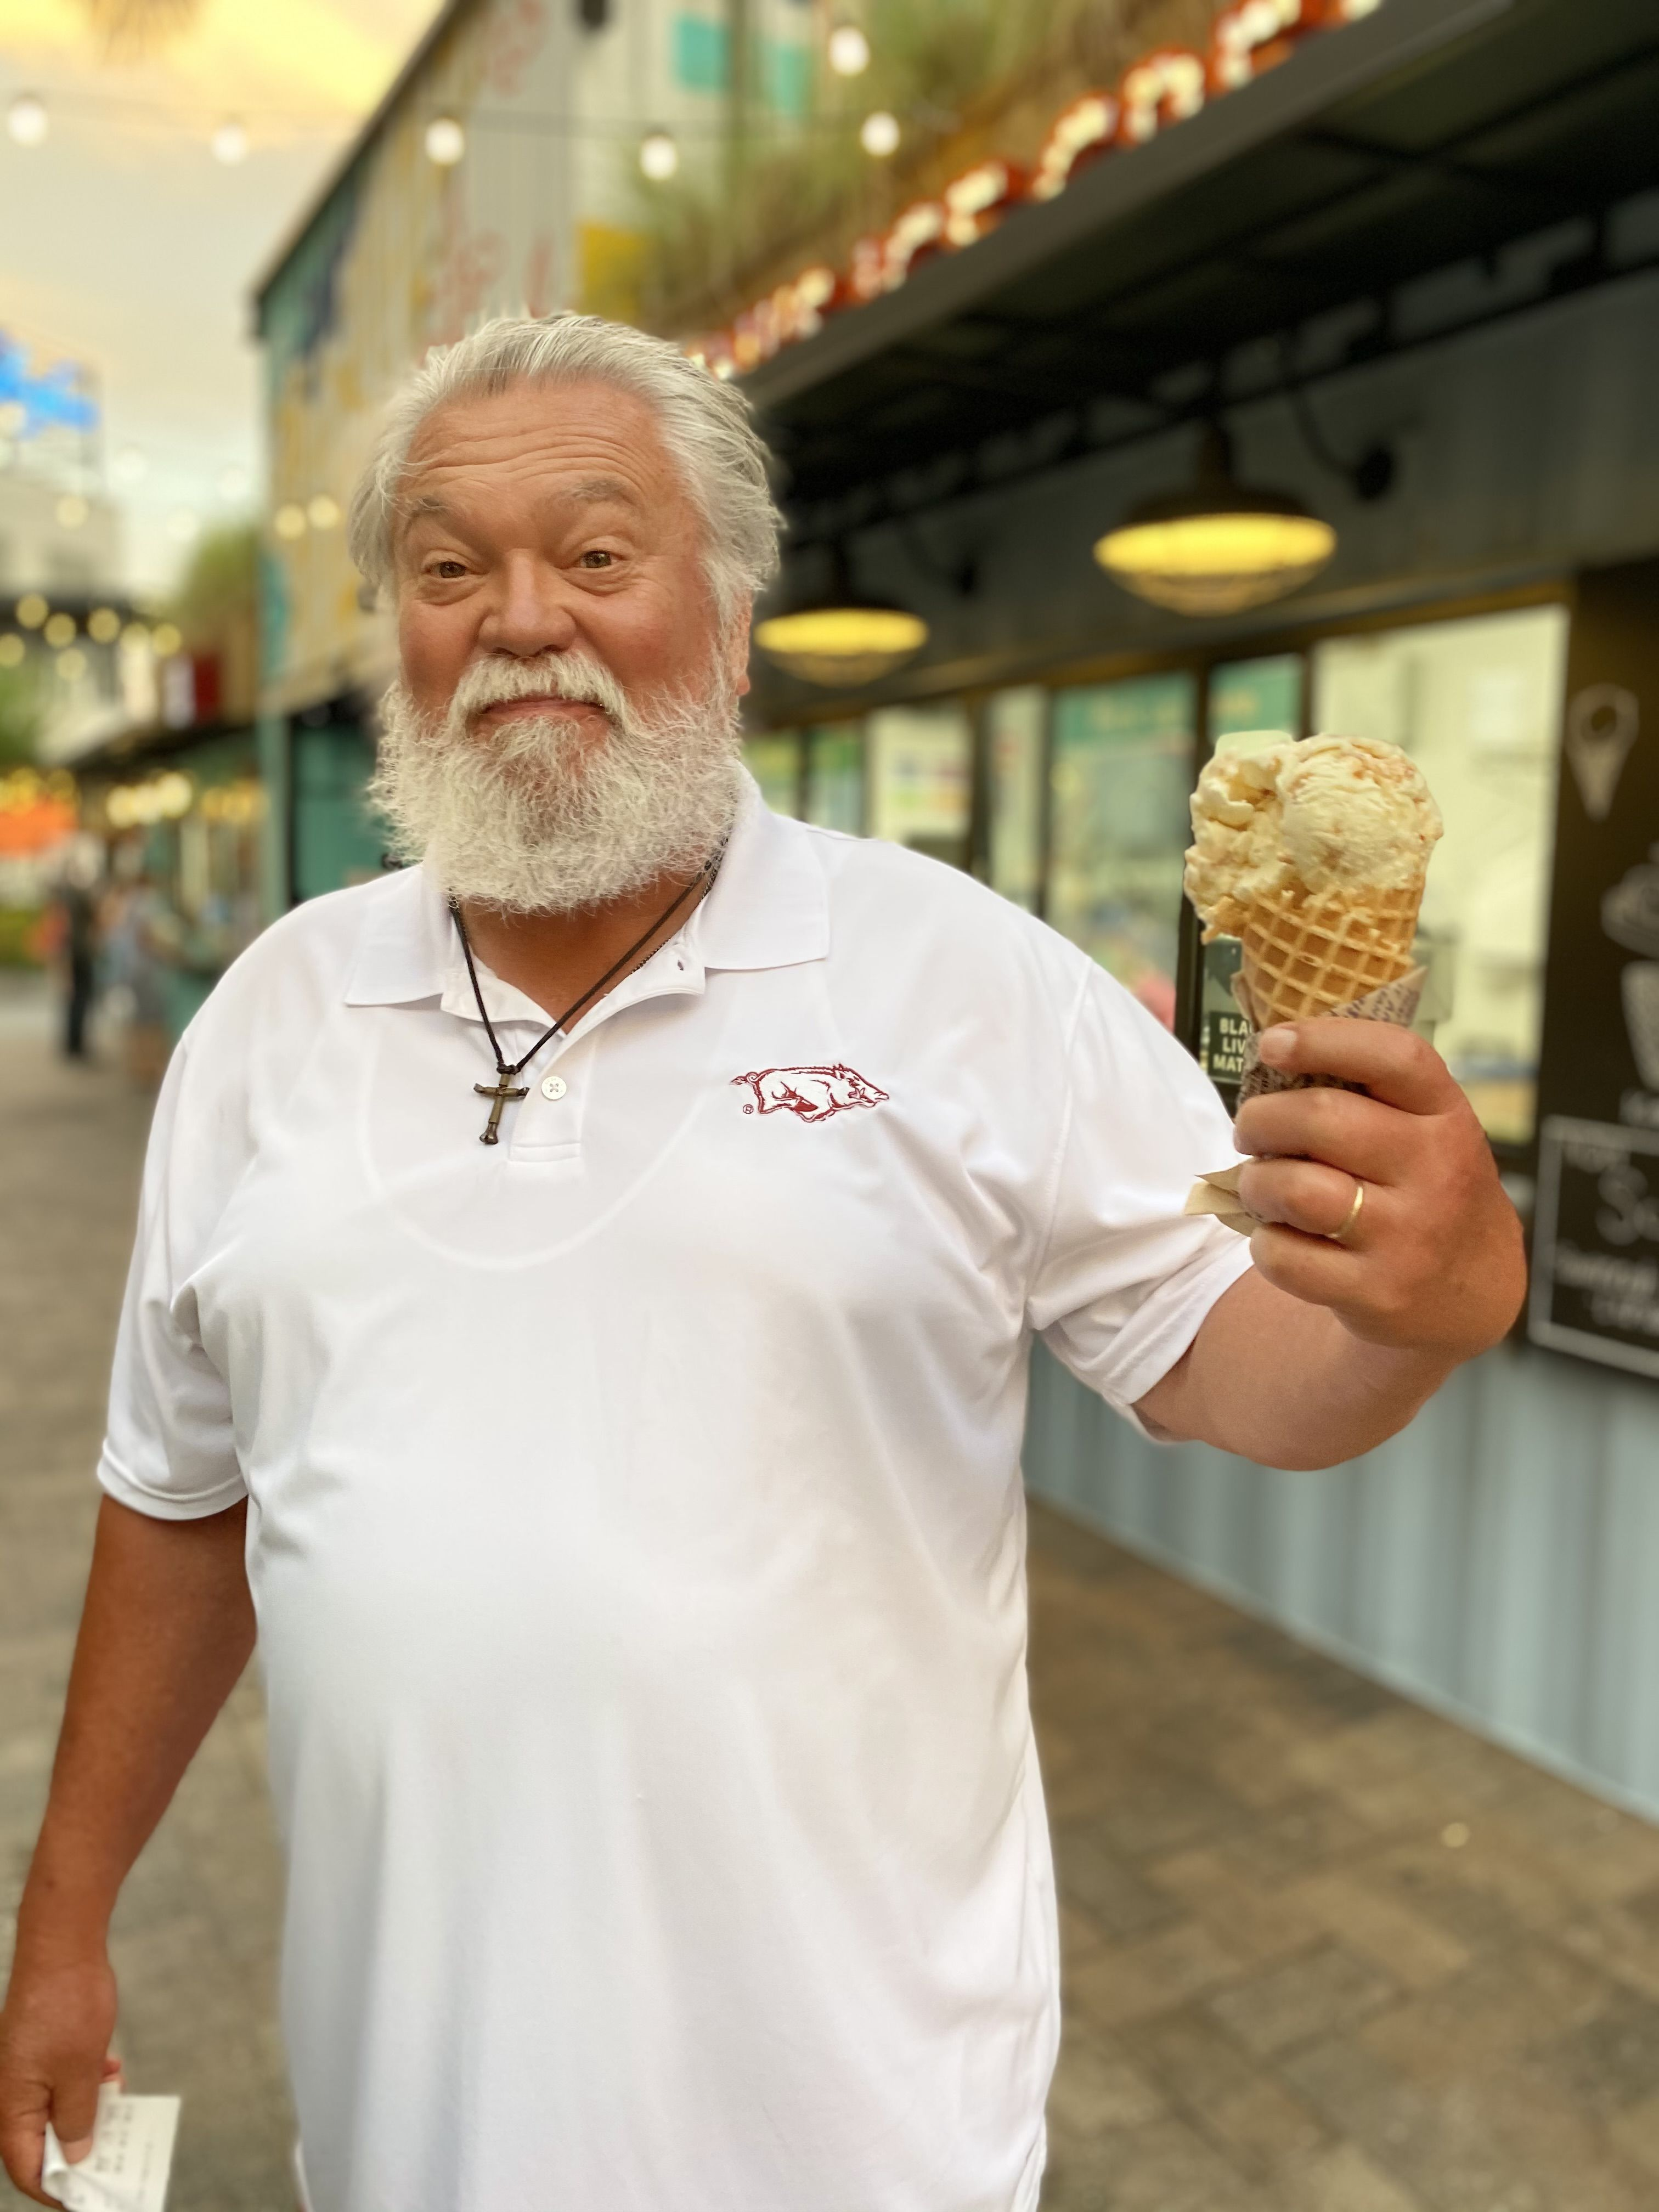 A tall man with white hair is holding and an ice cream cone.